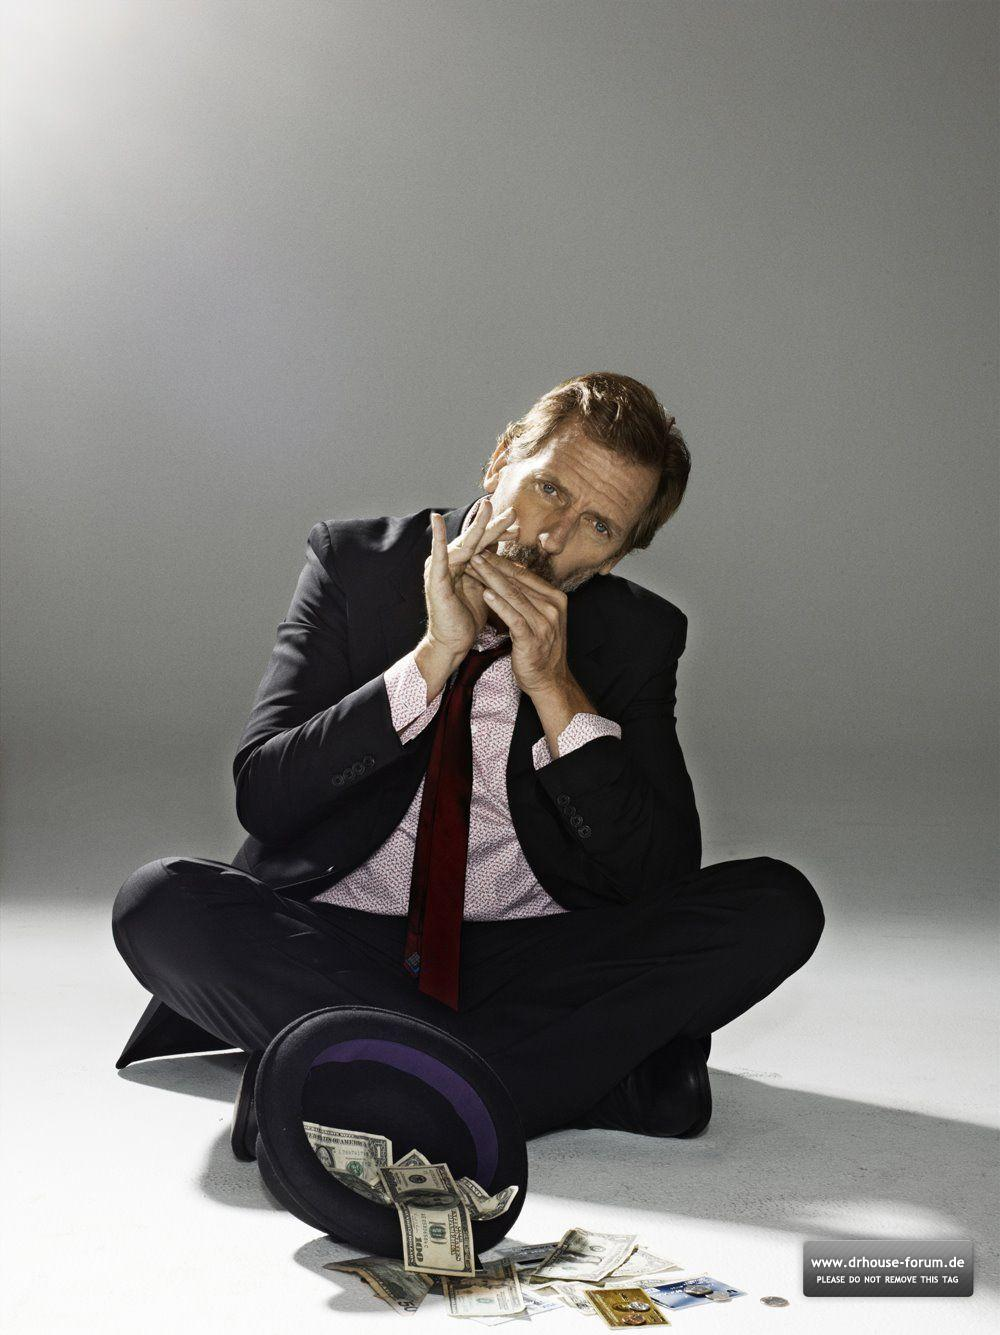 Hugh-Laurie-Sings-the-Blues-The-New-York-Times-Magazine-Photoshoot-September-2011-hugh-laurie-35379547-1000-1335.jpg